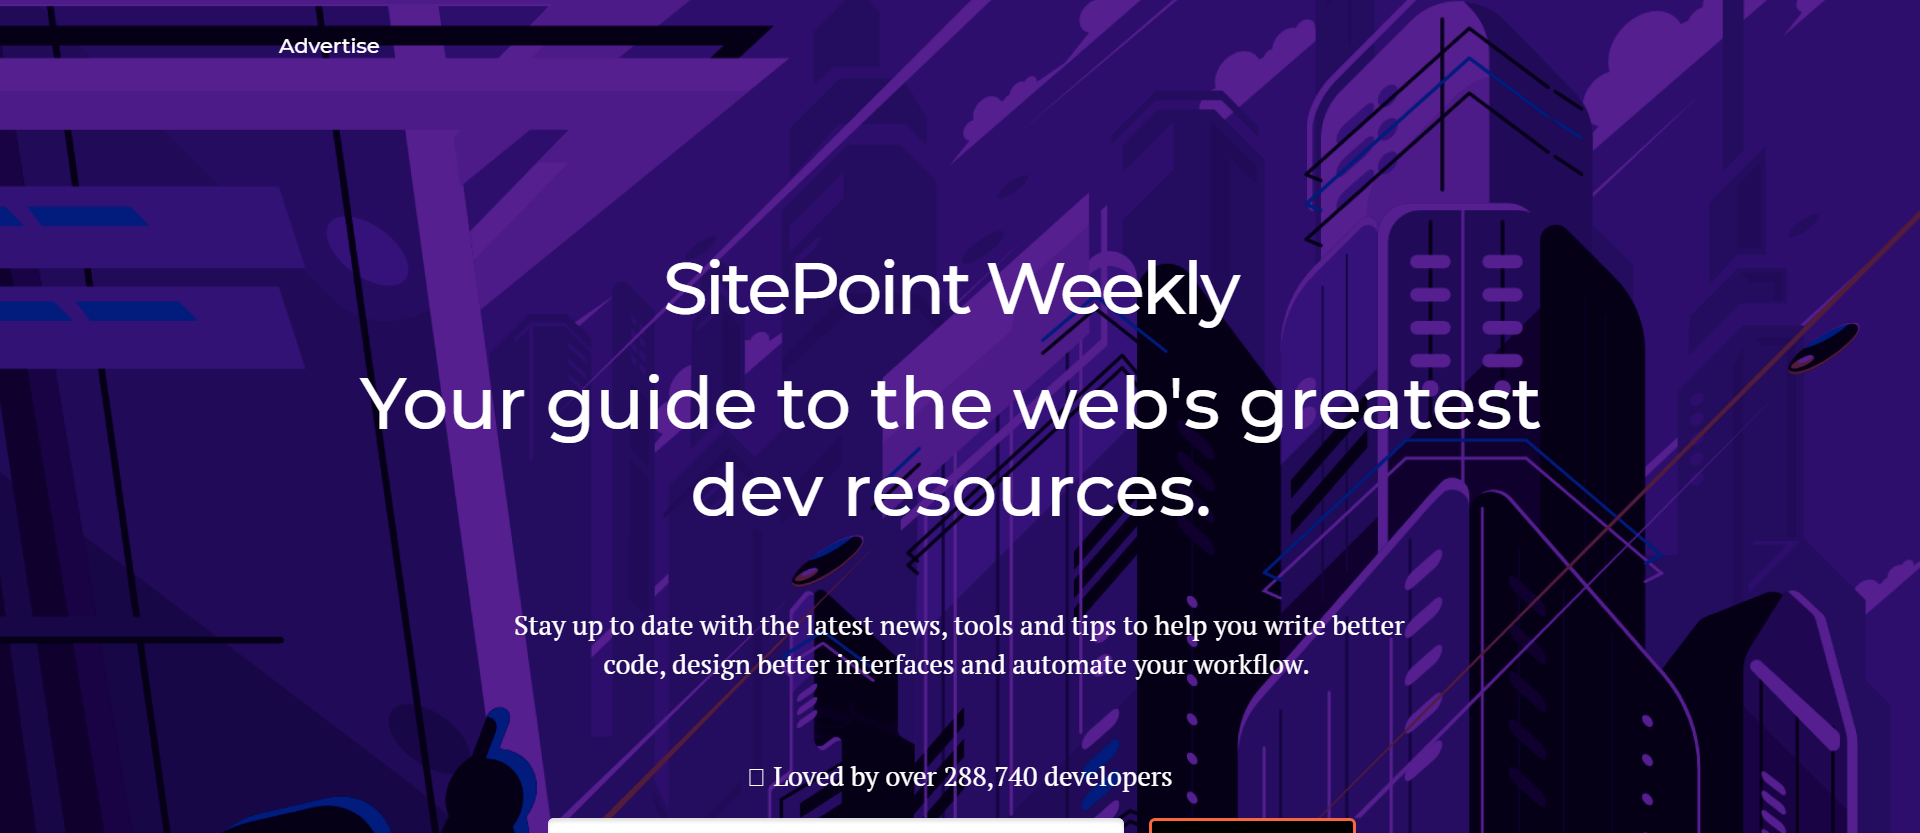 SitePoint Weekly newsletter